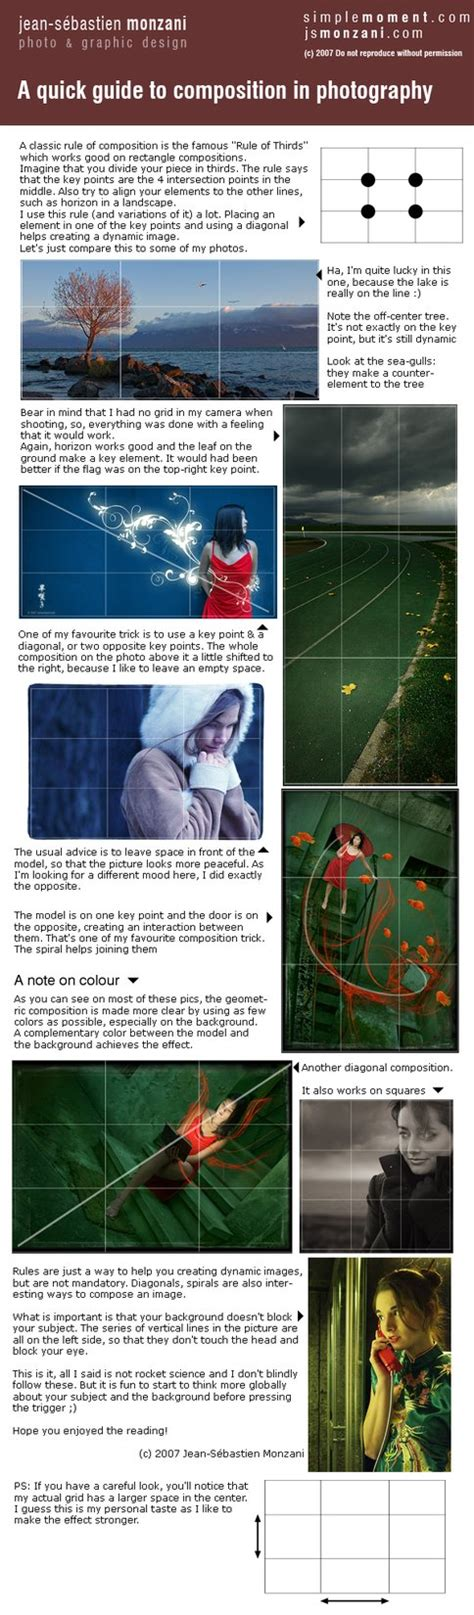 A Quick Guide To Composition By Jsmonzani On Deviantart